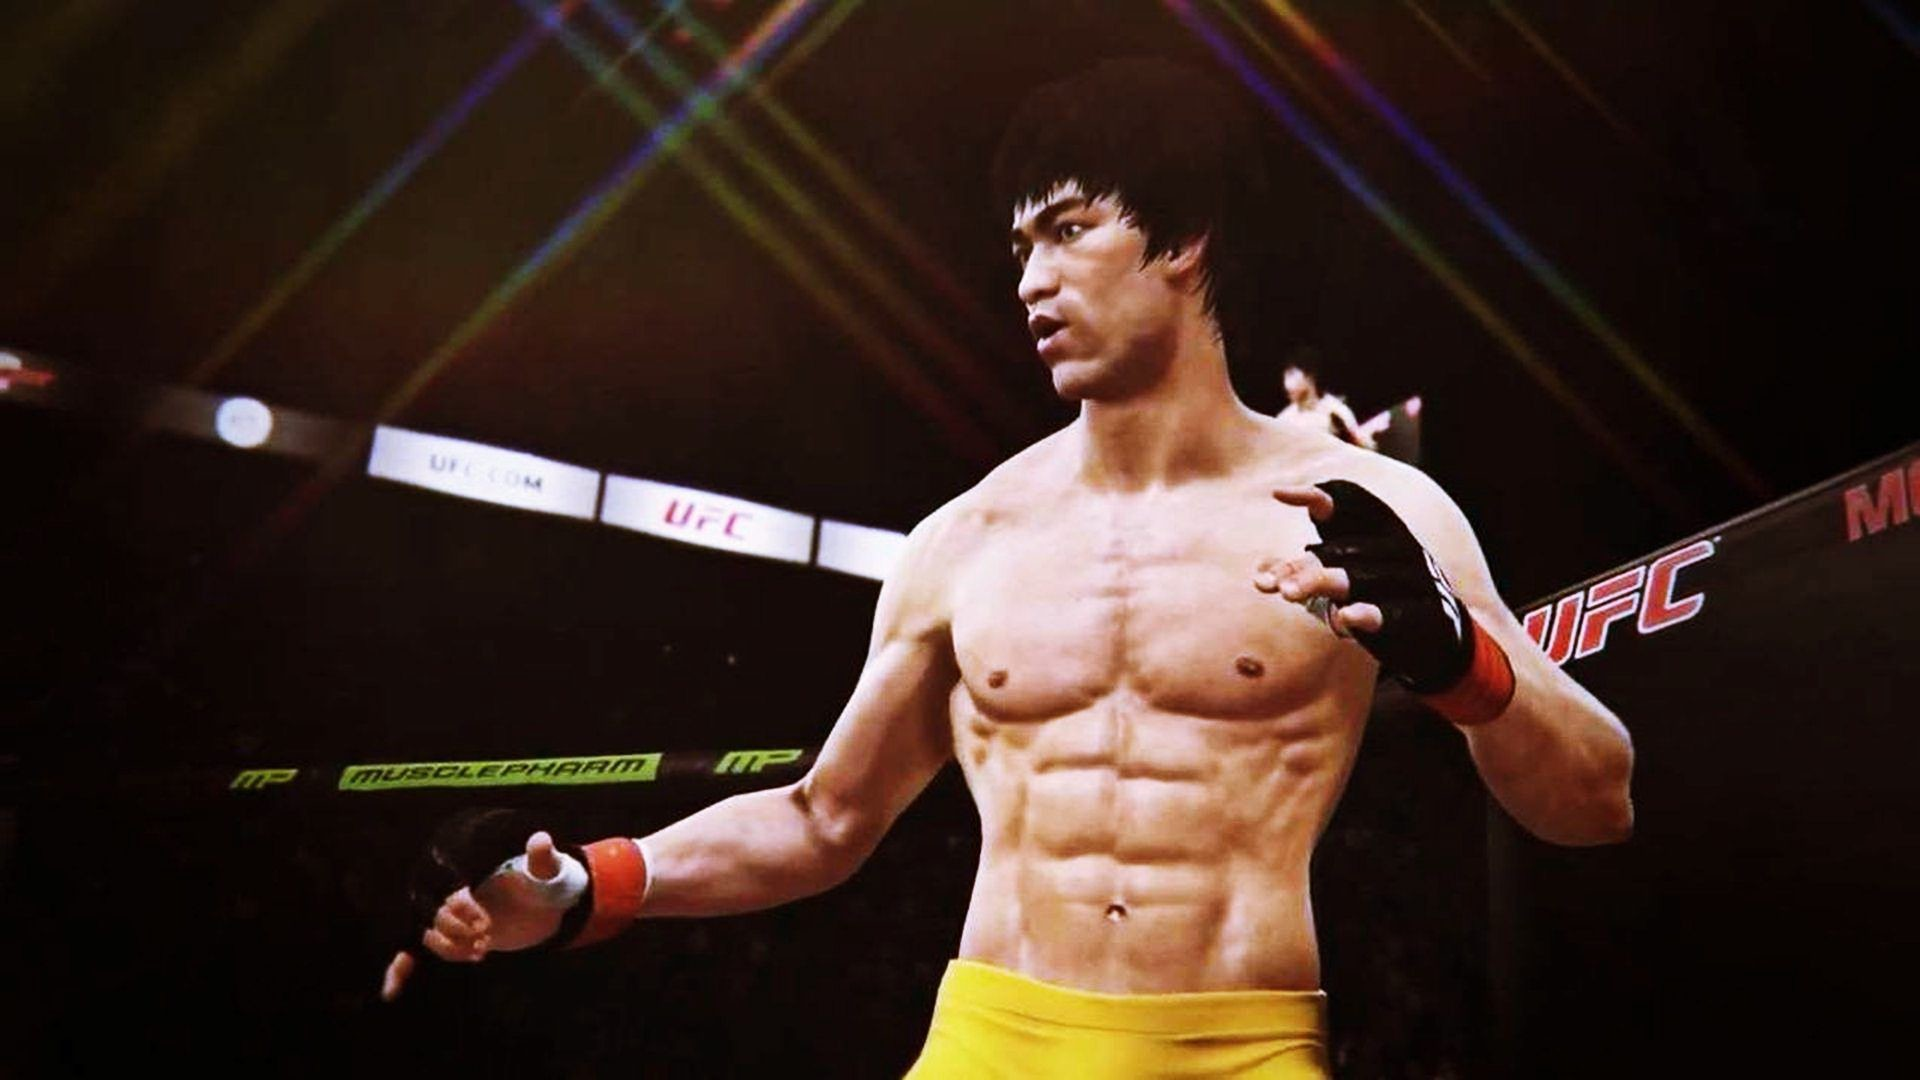 Res: 1920x1080, Game Bruce Lee hd wallpapers.